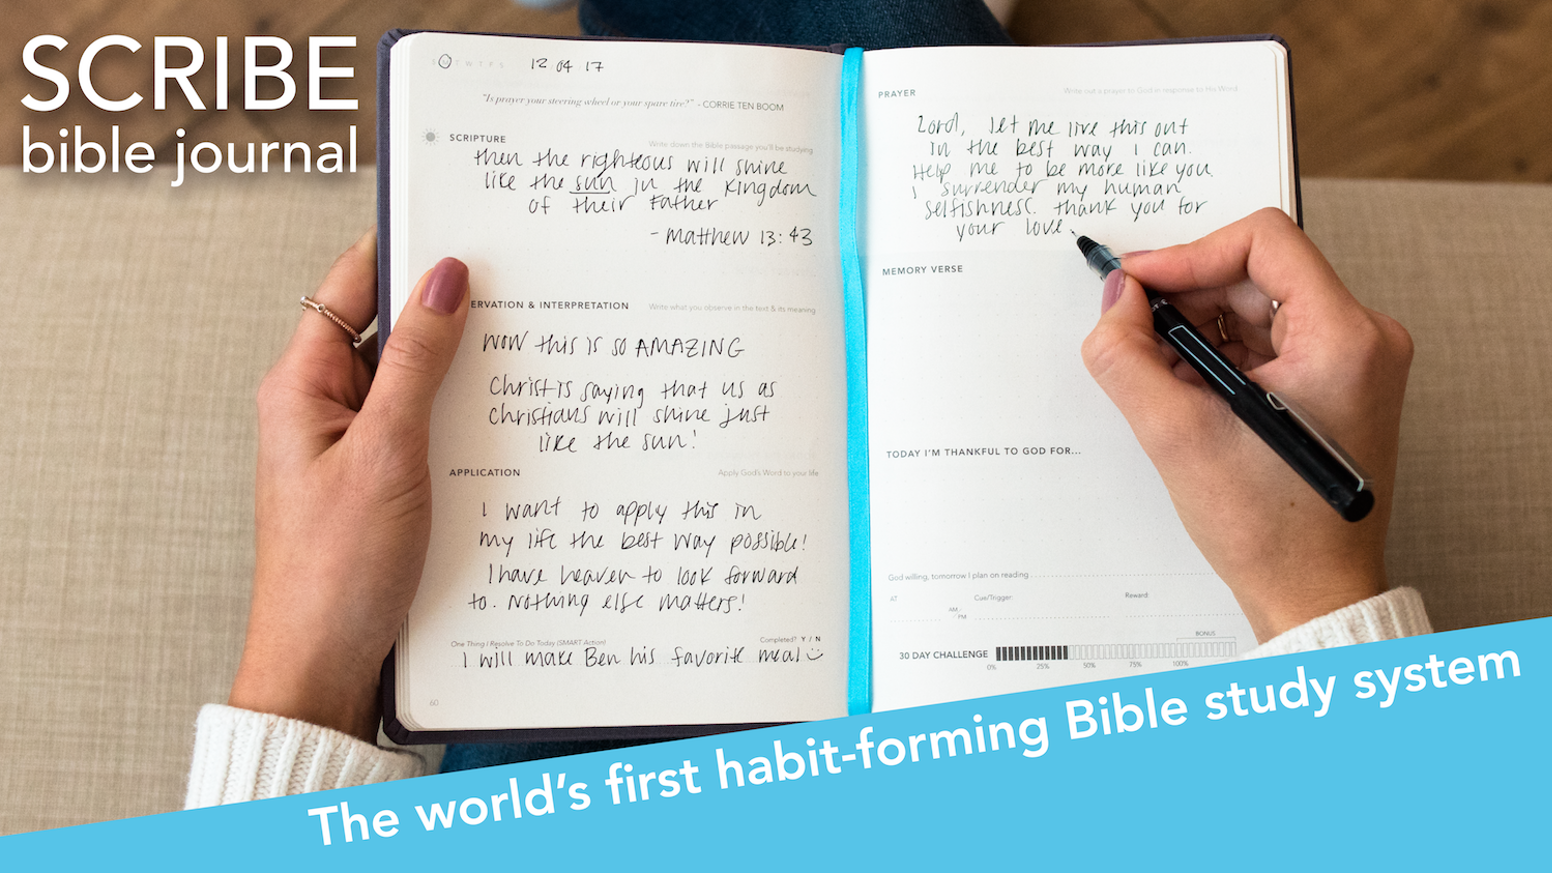 Making time to read the Bible everyday can be hard. Meet the world's first HABIT-FORMING Bible study system for busy Christians.